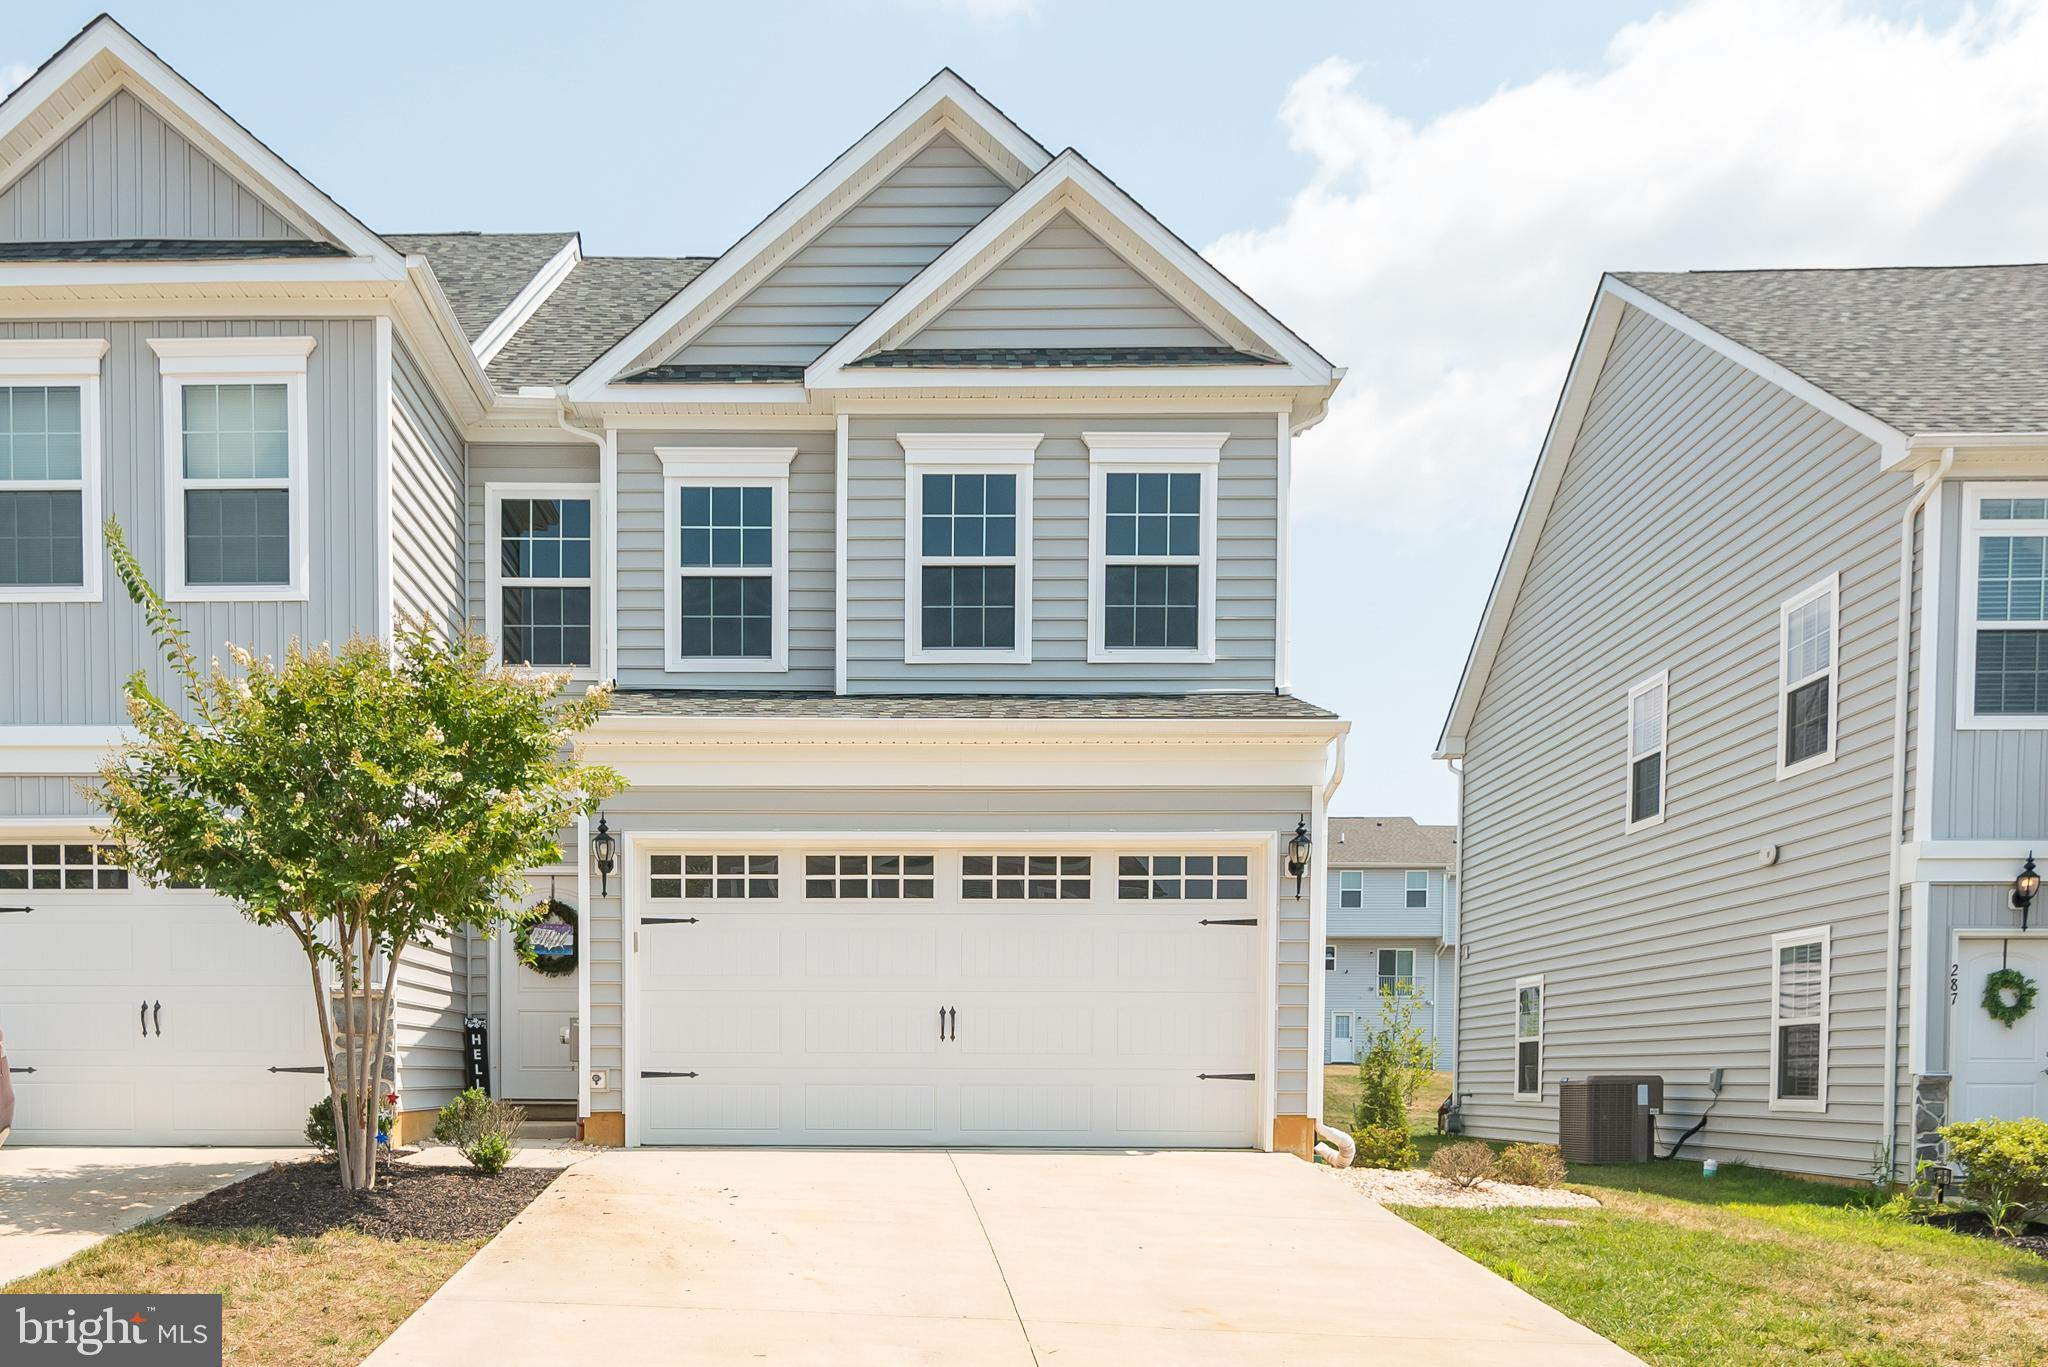 Welcome to 289 Mingo way located in the community of Spring Oak, this end of row townhome has so muc